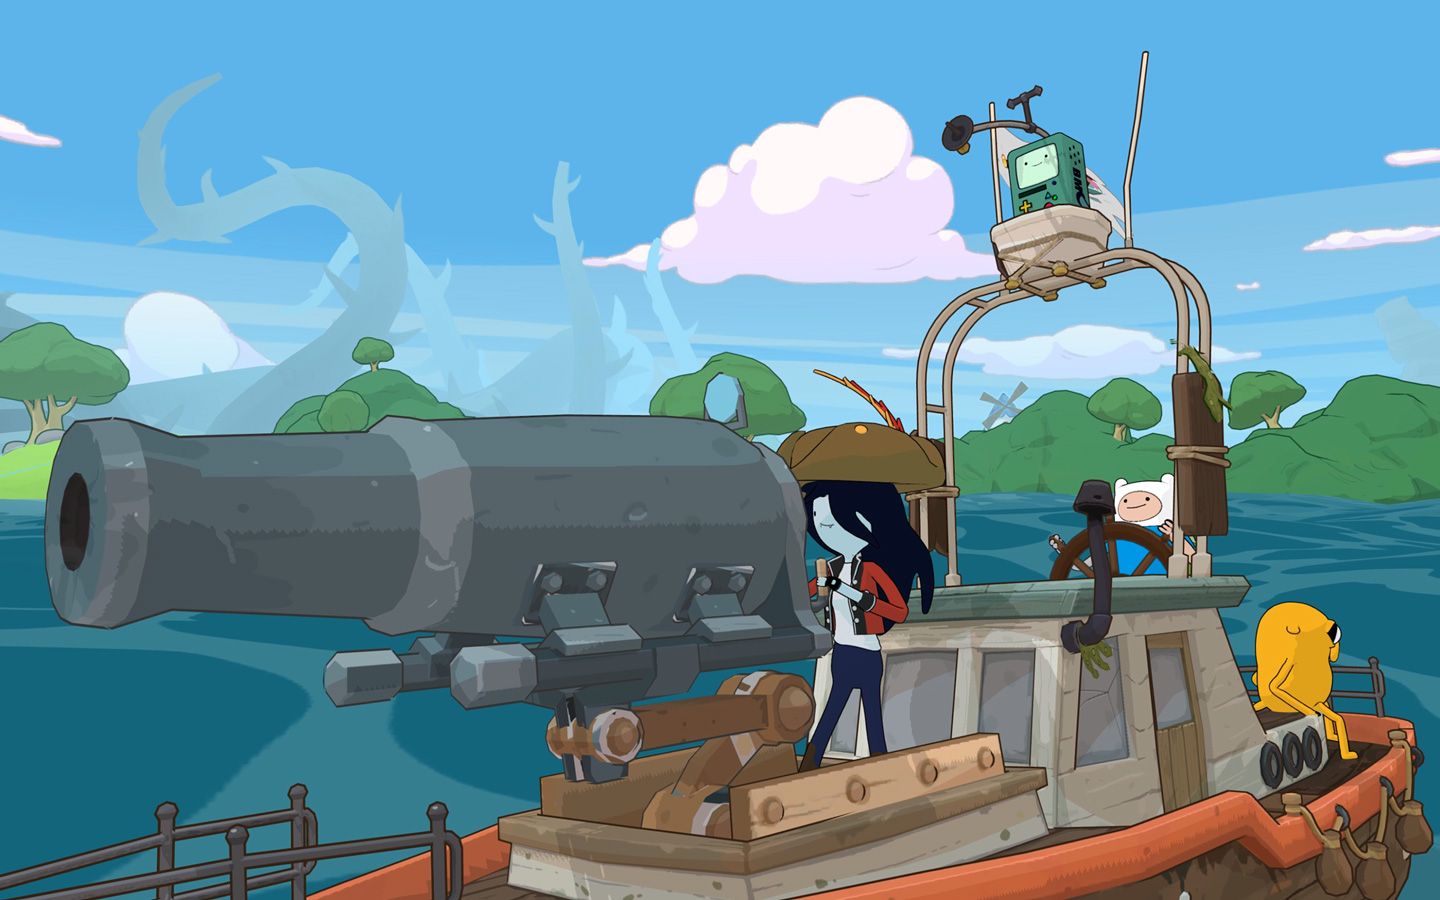 Free Adventure Time: Pirates of the Enchiridion Wallpaper in 1440x900